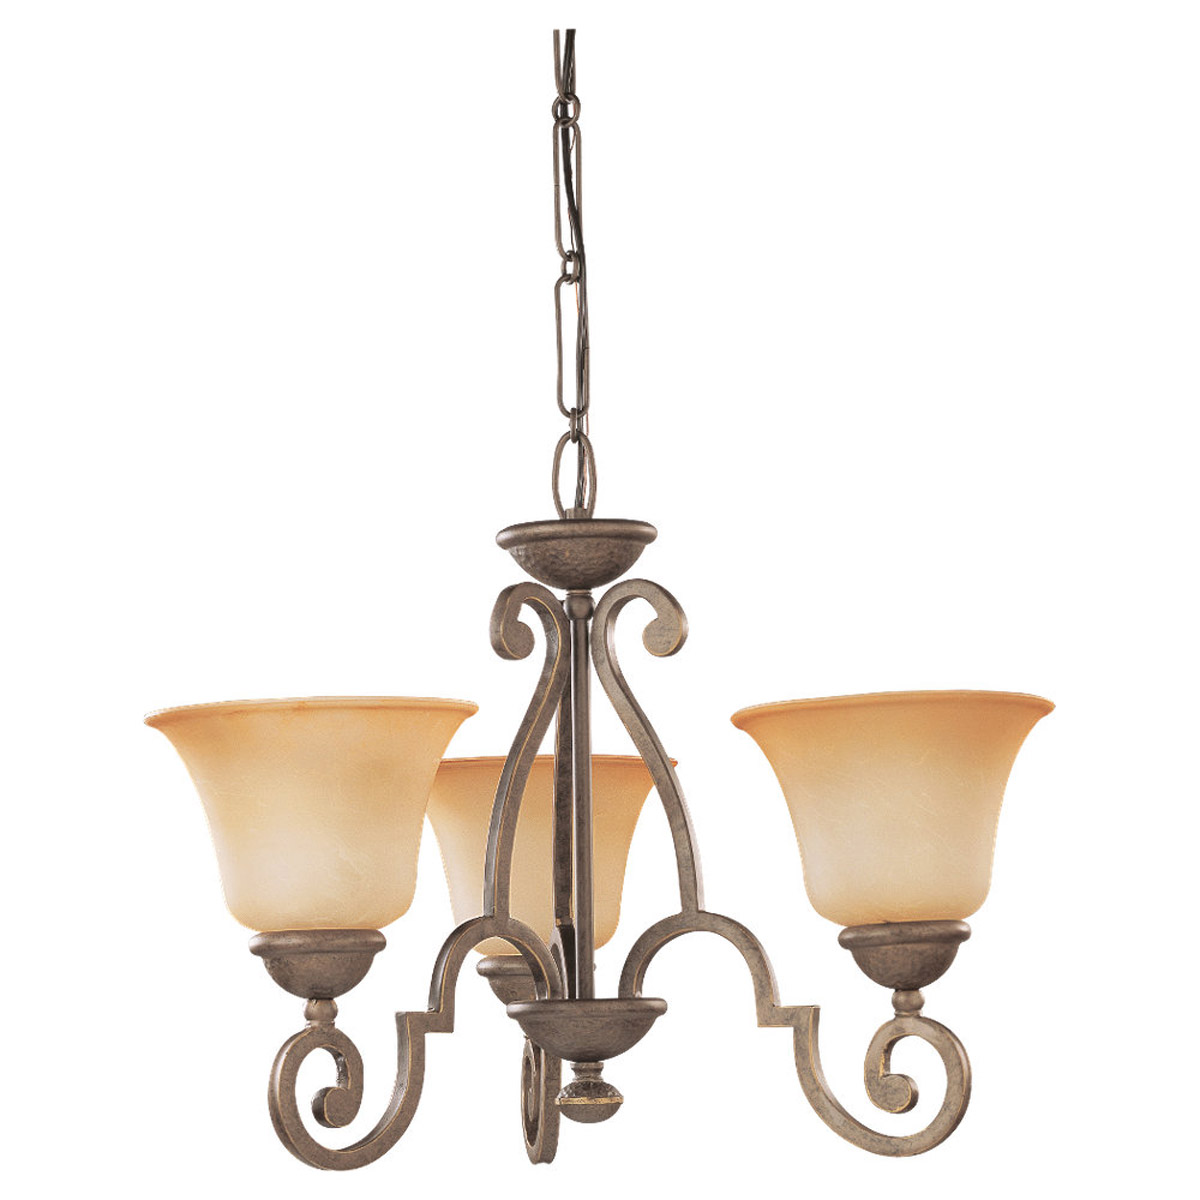 Sea Gull Lighting Brandywine 3 Light Chandelier in Antique Bronze 39031BLE-71 photo